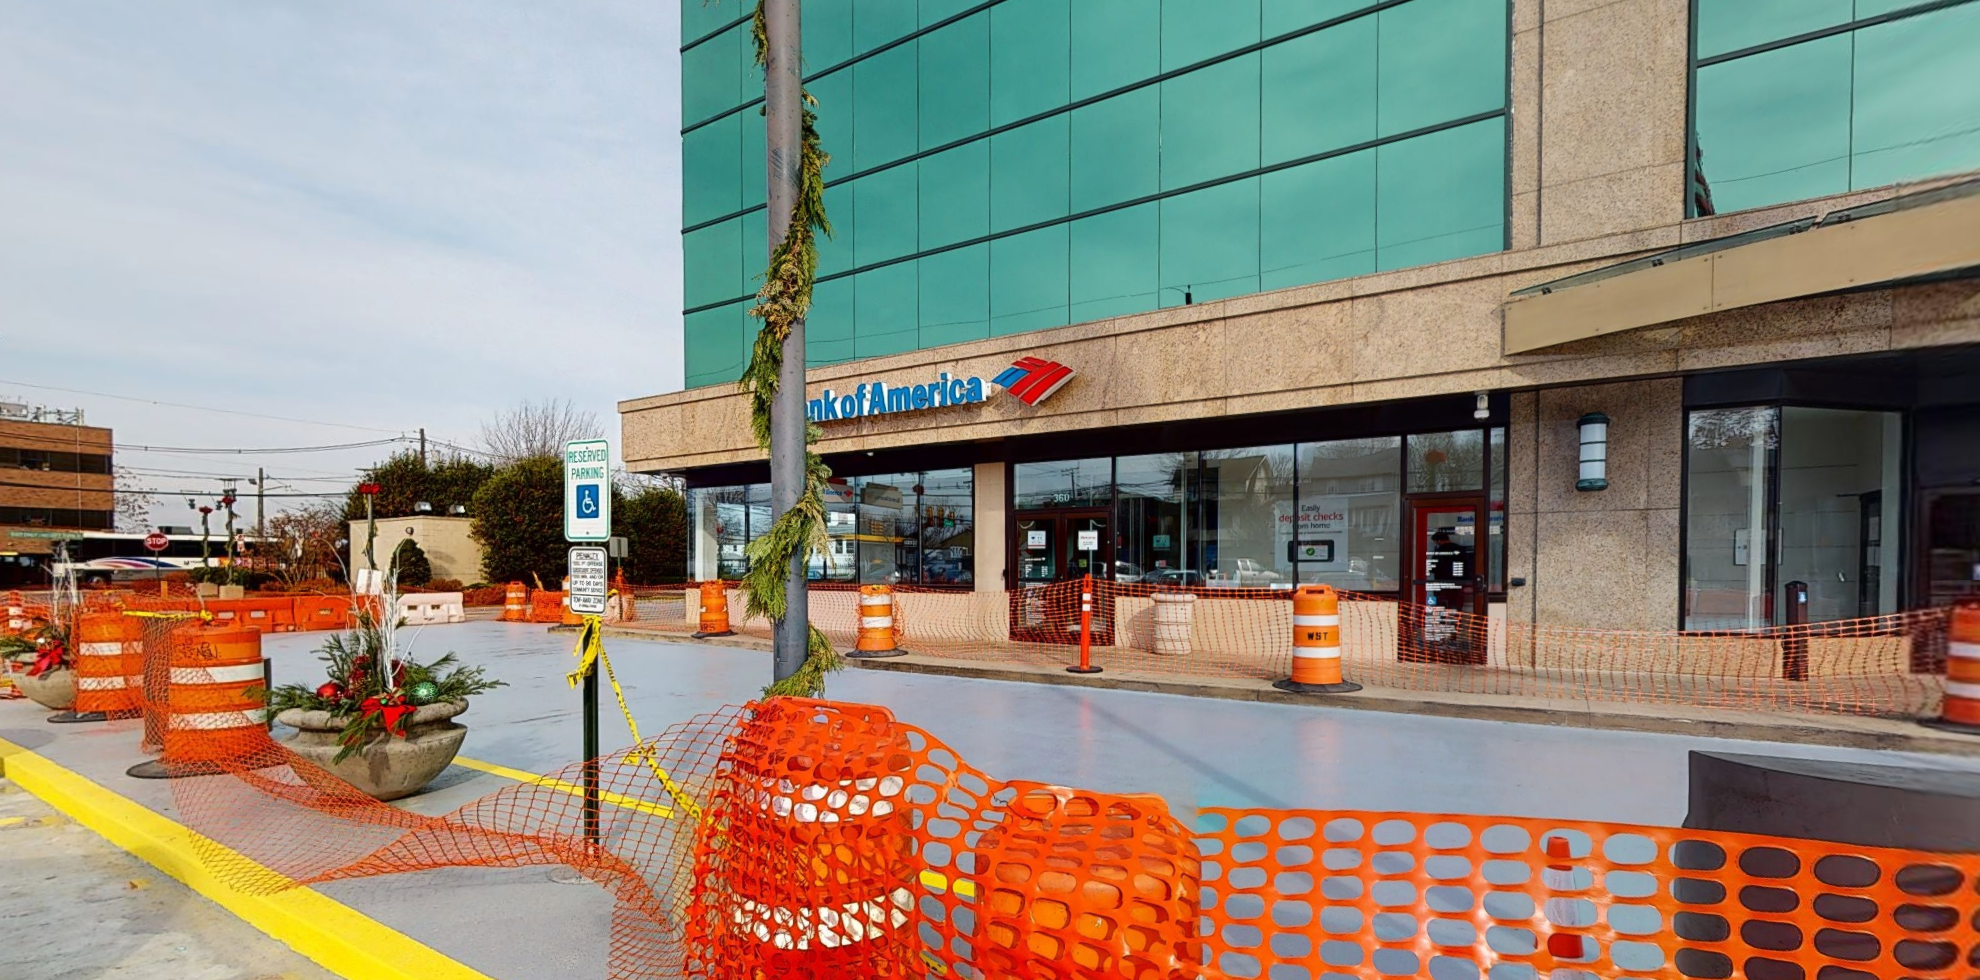 Bank of America financial center with drive-thru ATM | 360 Essex St, Hackensack, NJ 07601